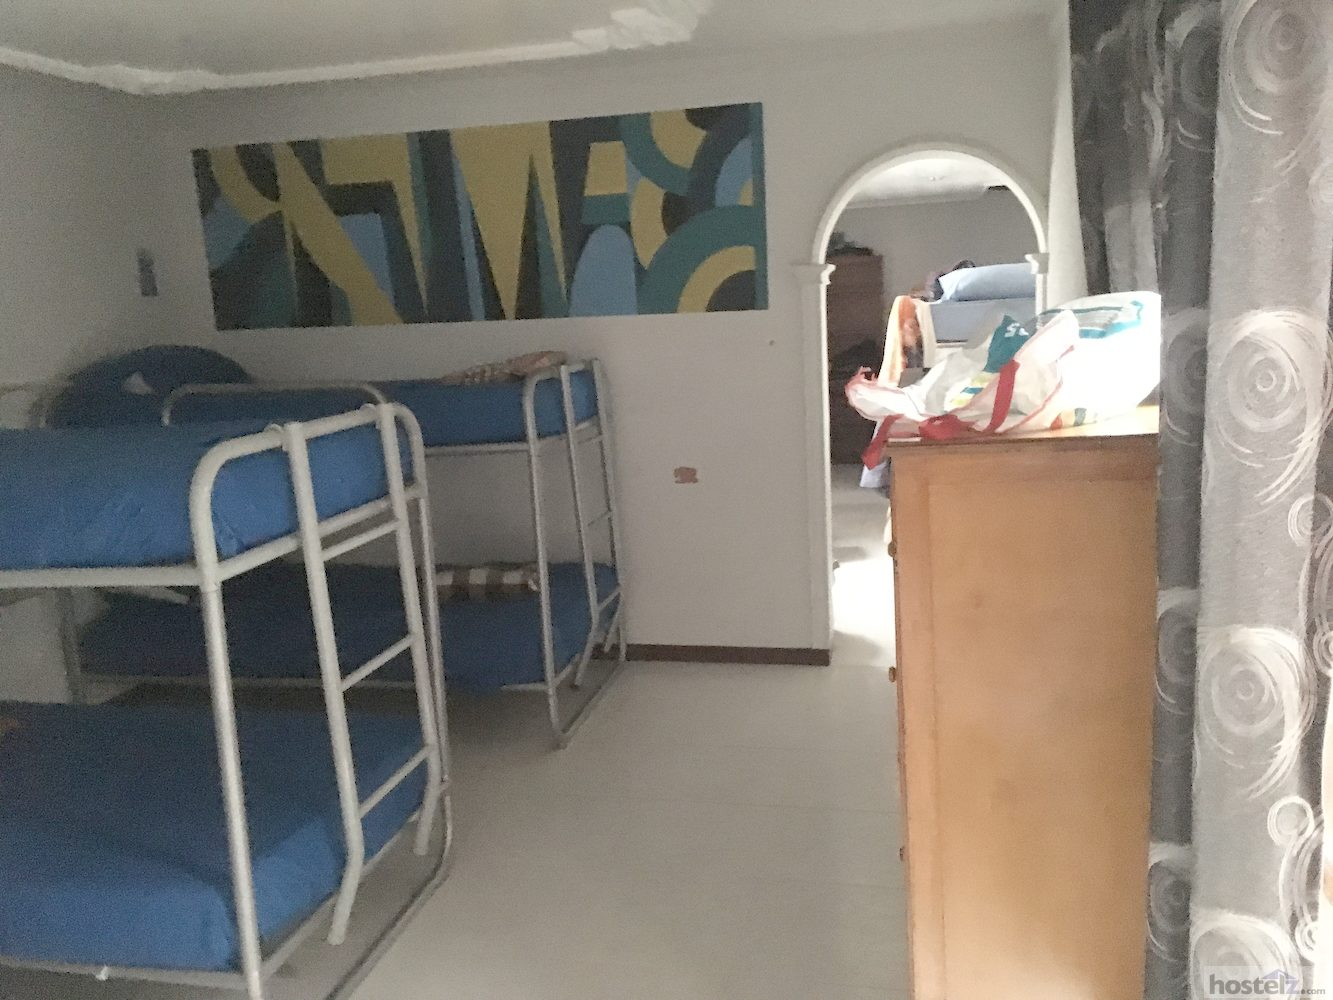 One of the upstairs dorm rooms